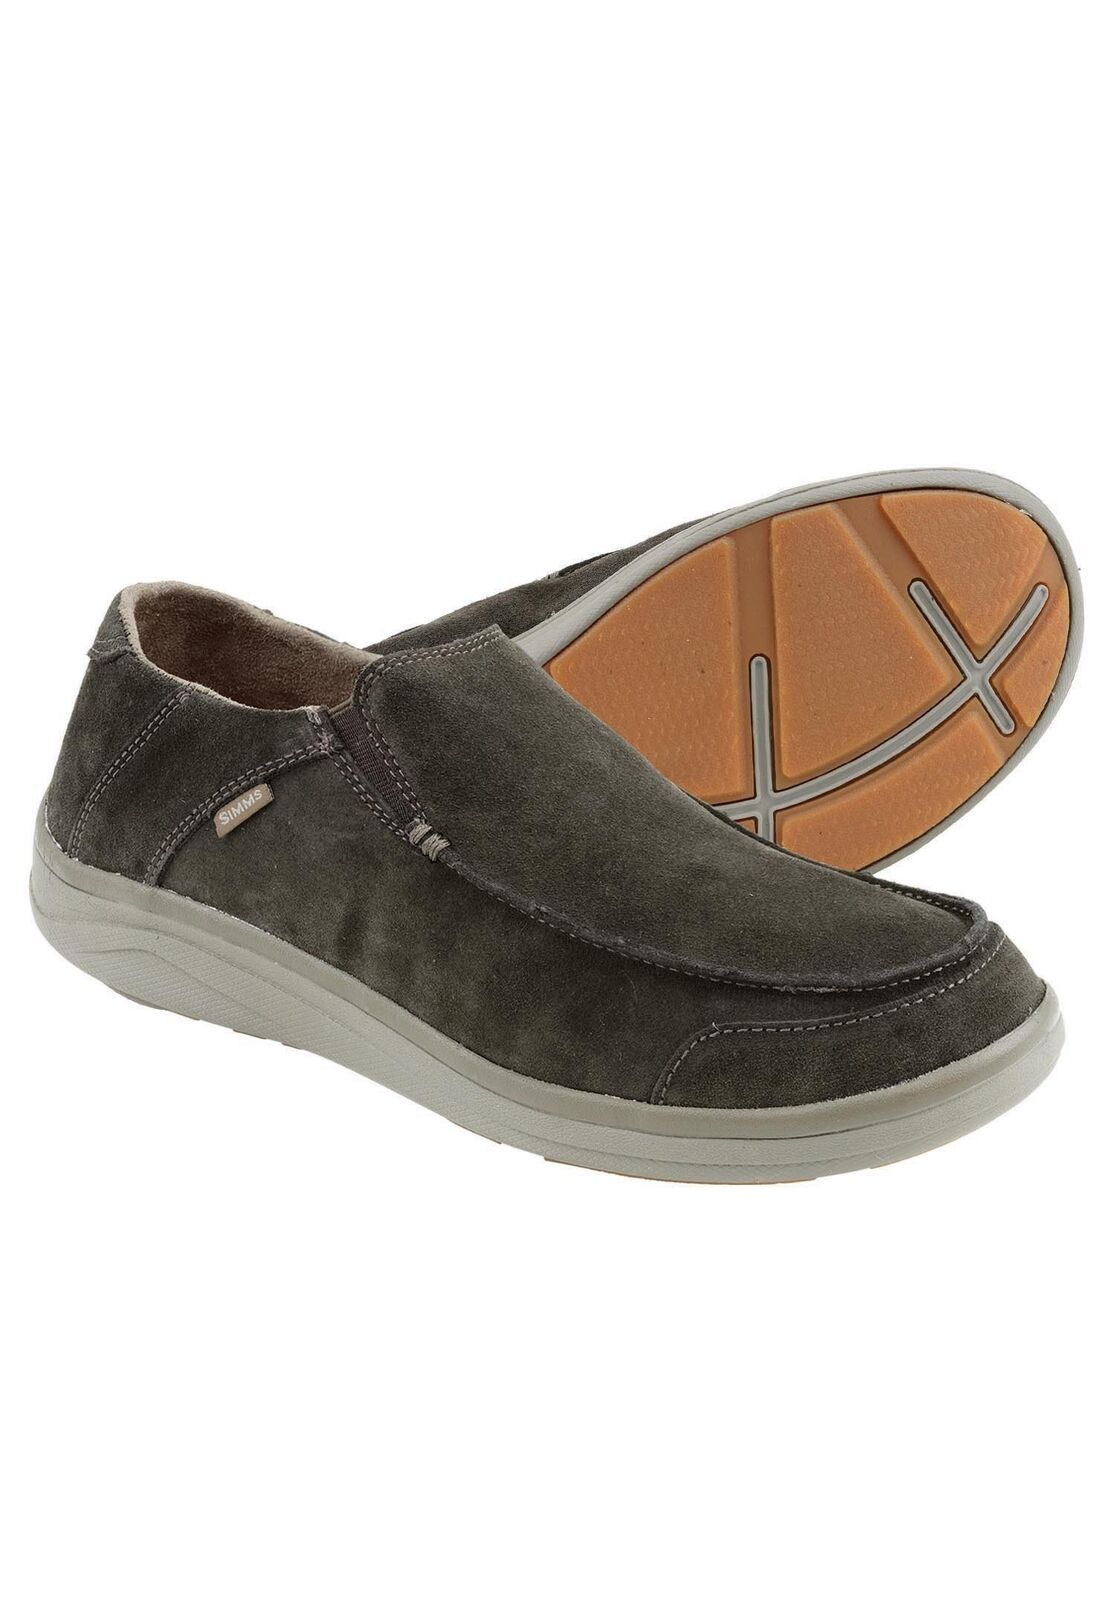 Simms Westshore Leather  Slip On shoes Dark Olive - Size 7 -CLOSEOUT  free shipping